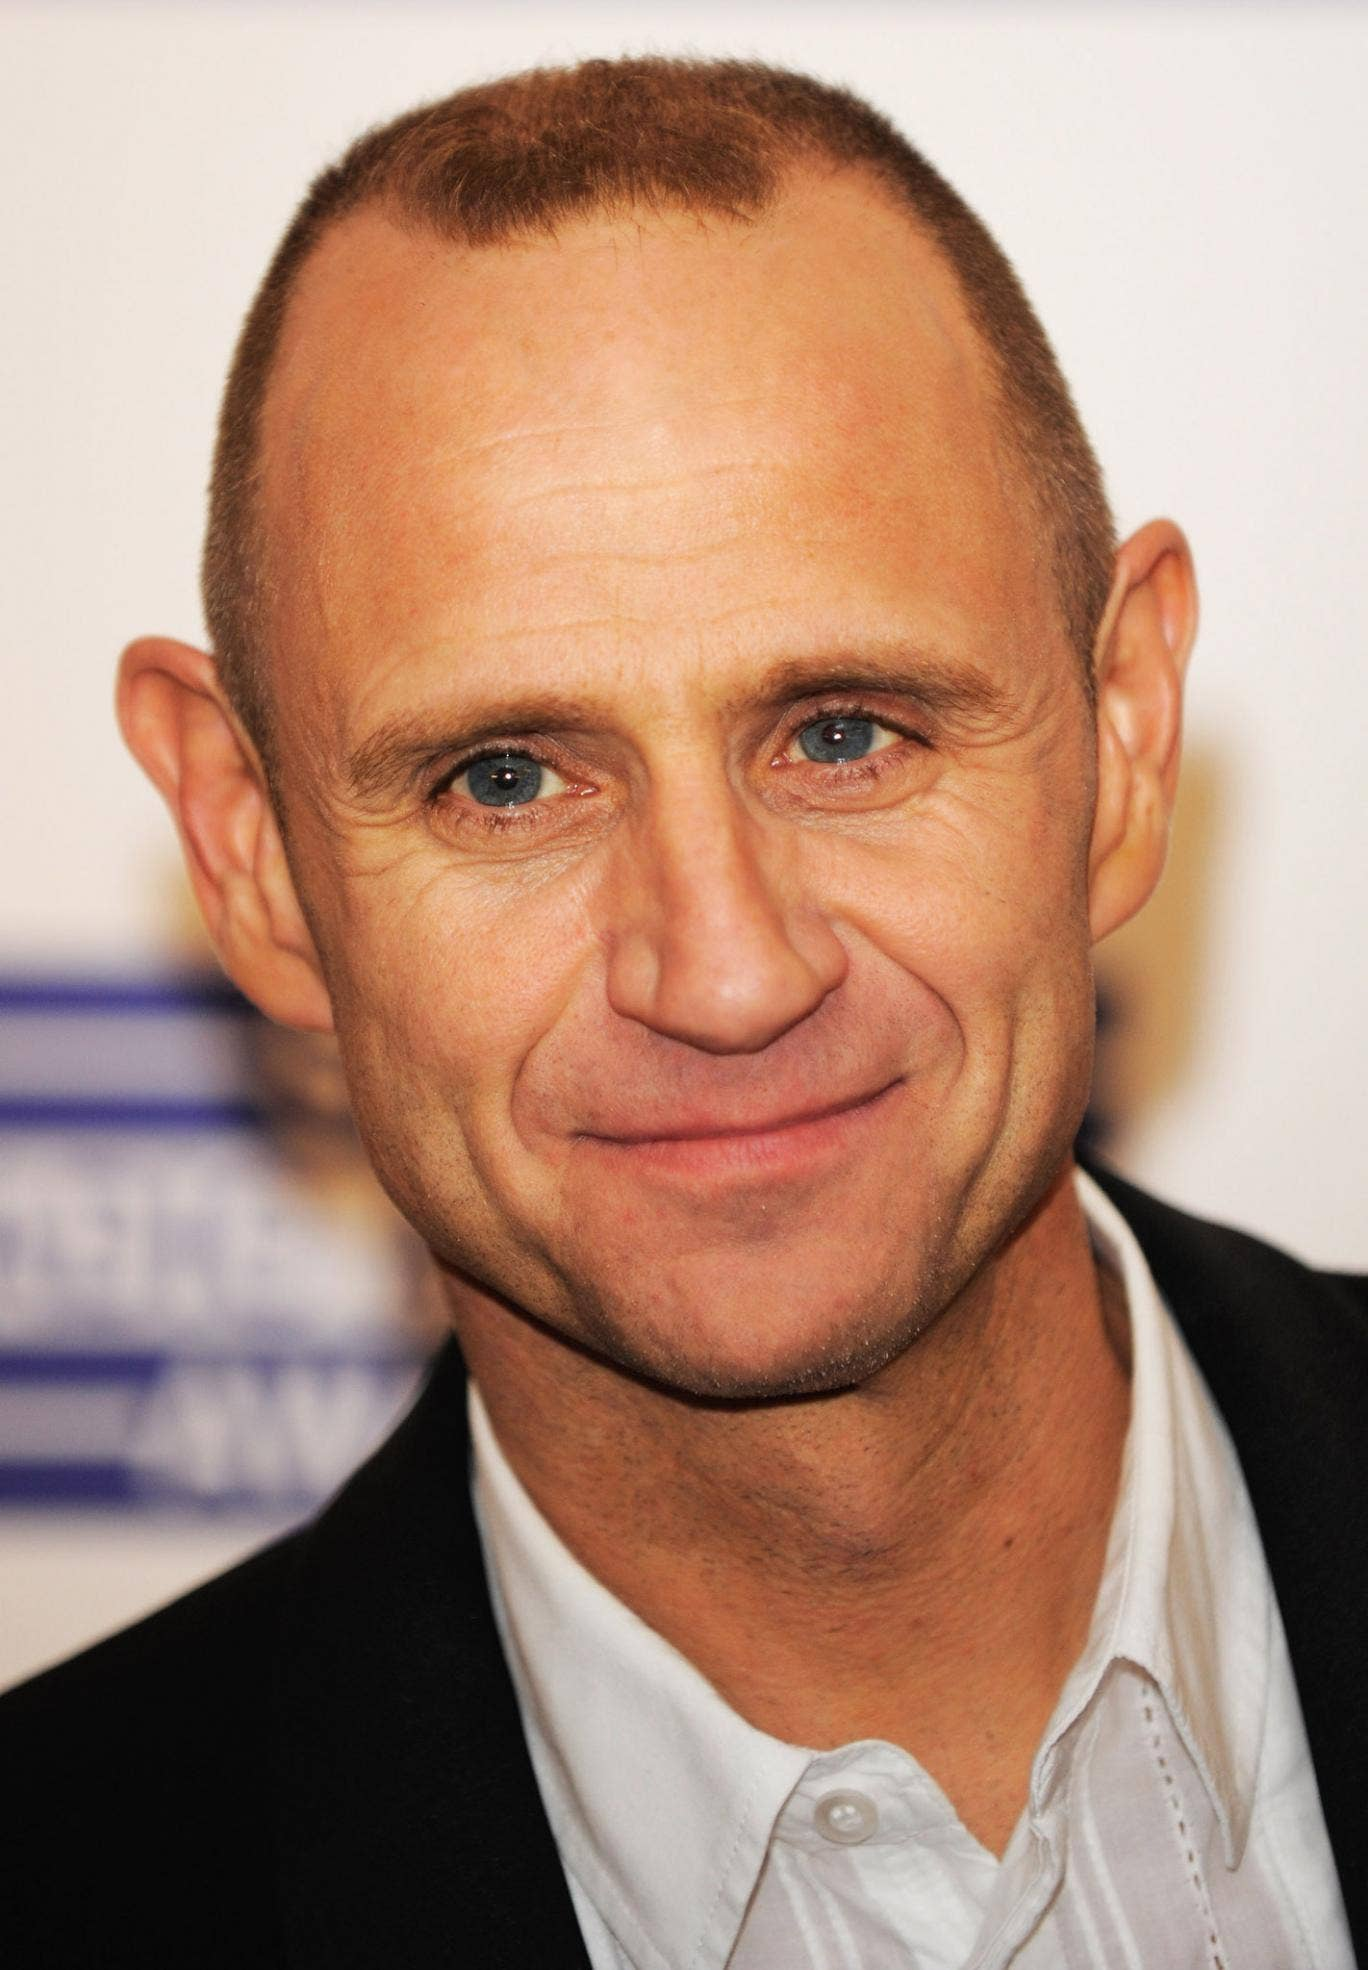 BBC broadcaster Evan Davis has spoken candidly about his experiences coming out as gay